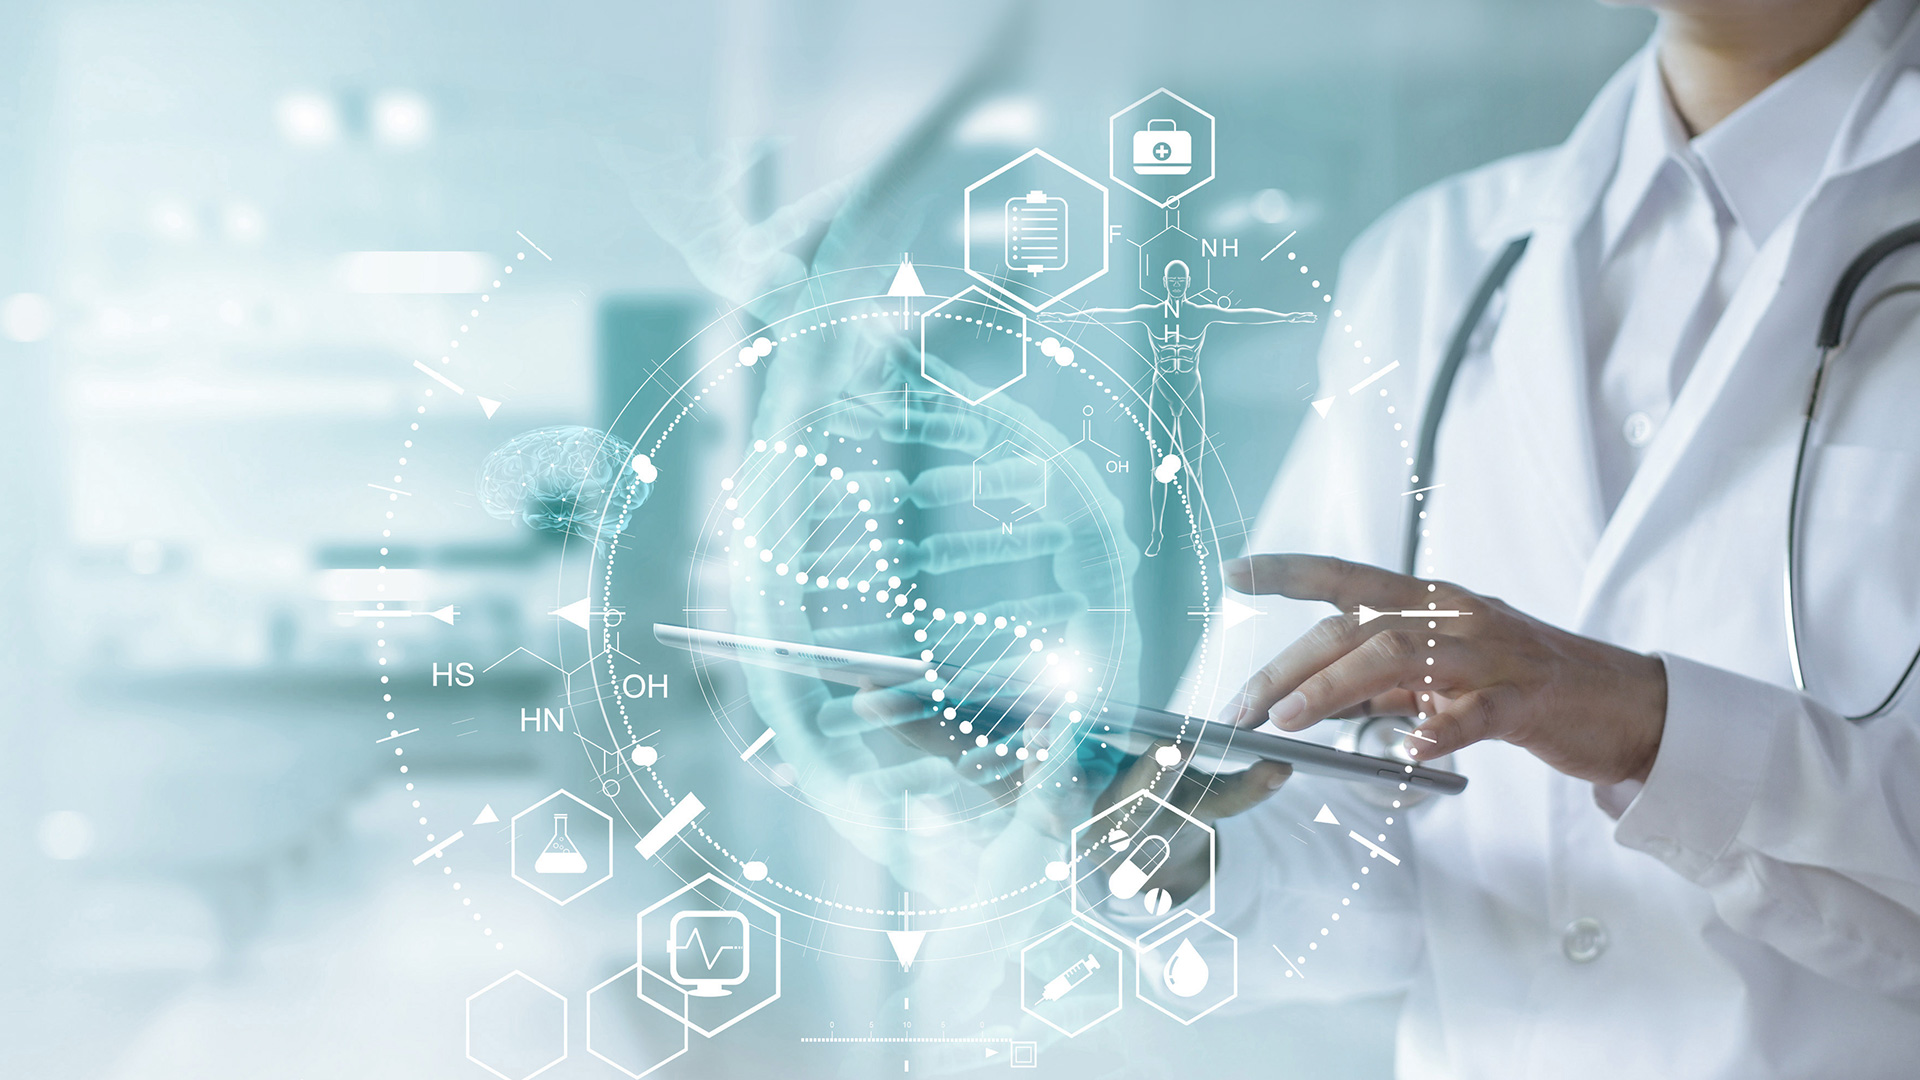 M&A trends and opportunities in digital healthcare